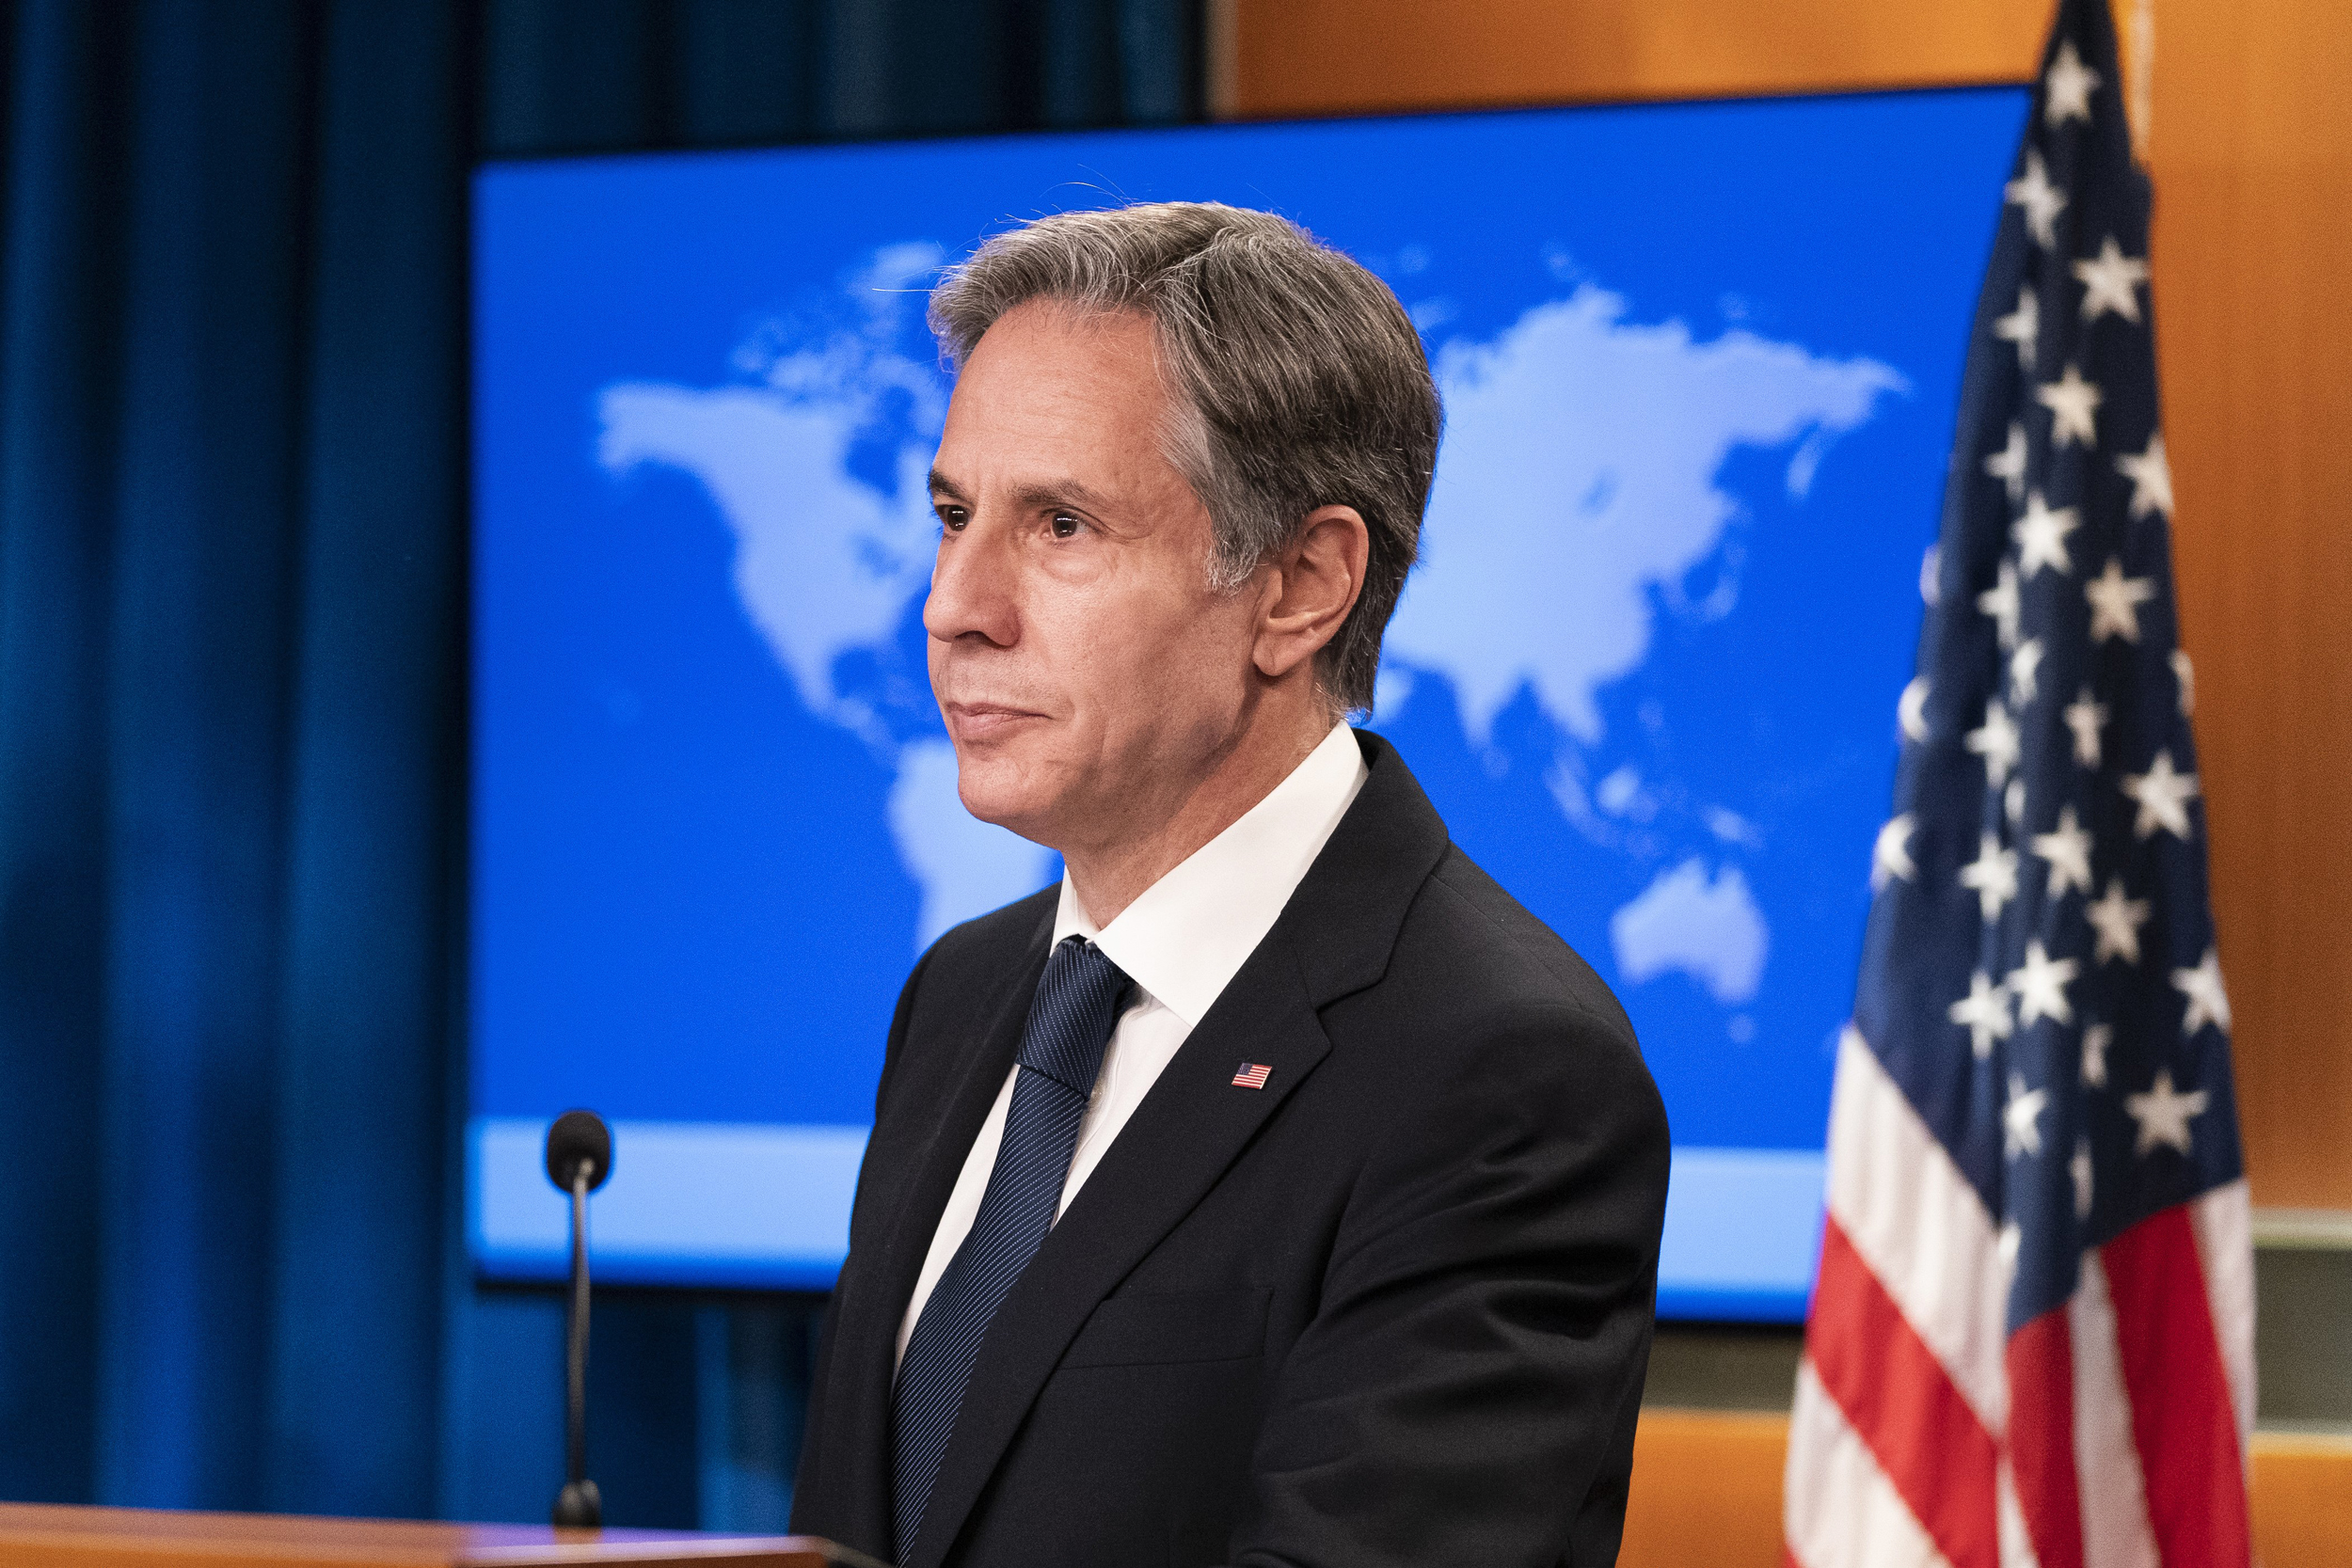 About 1,500 American citizens still in Afghanistan, secretary of state says